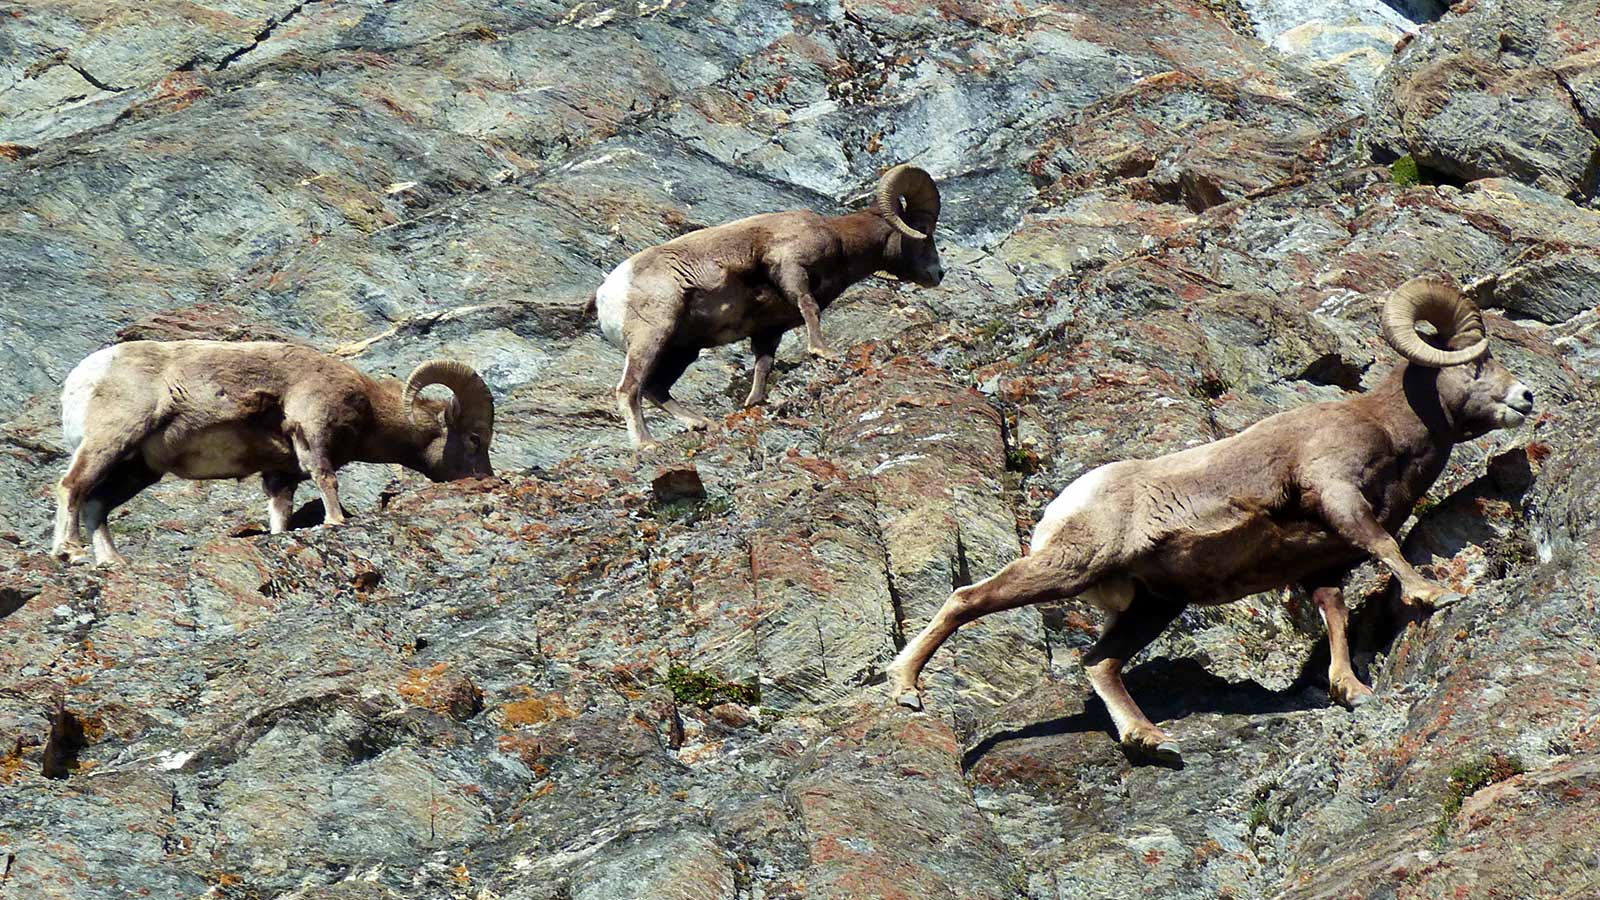 Bighorn sheep walking along a rocky cliff in Rocky Mountains Canada